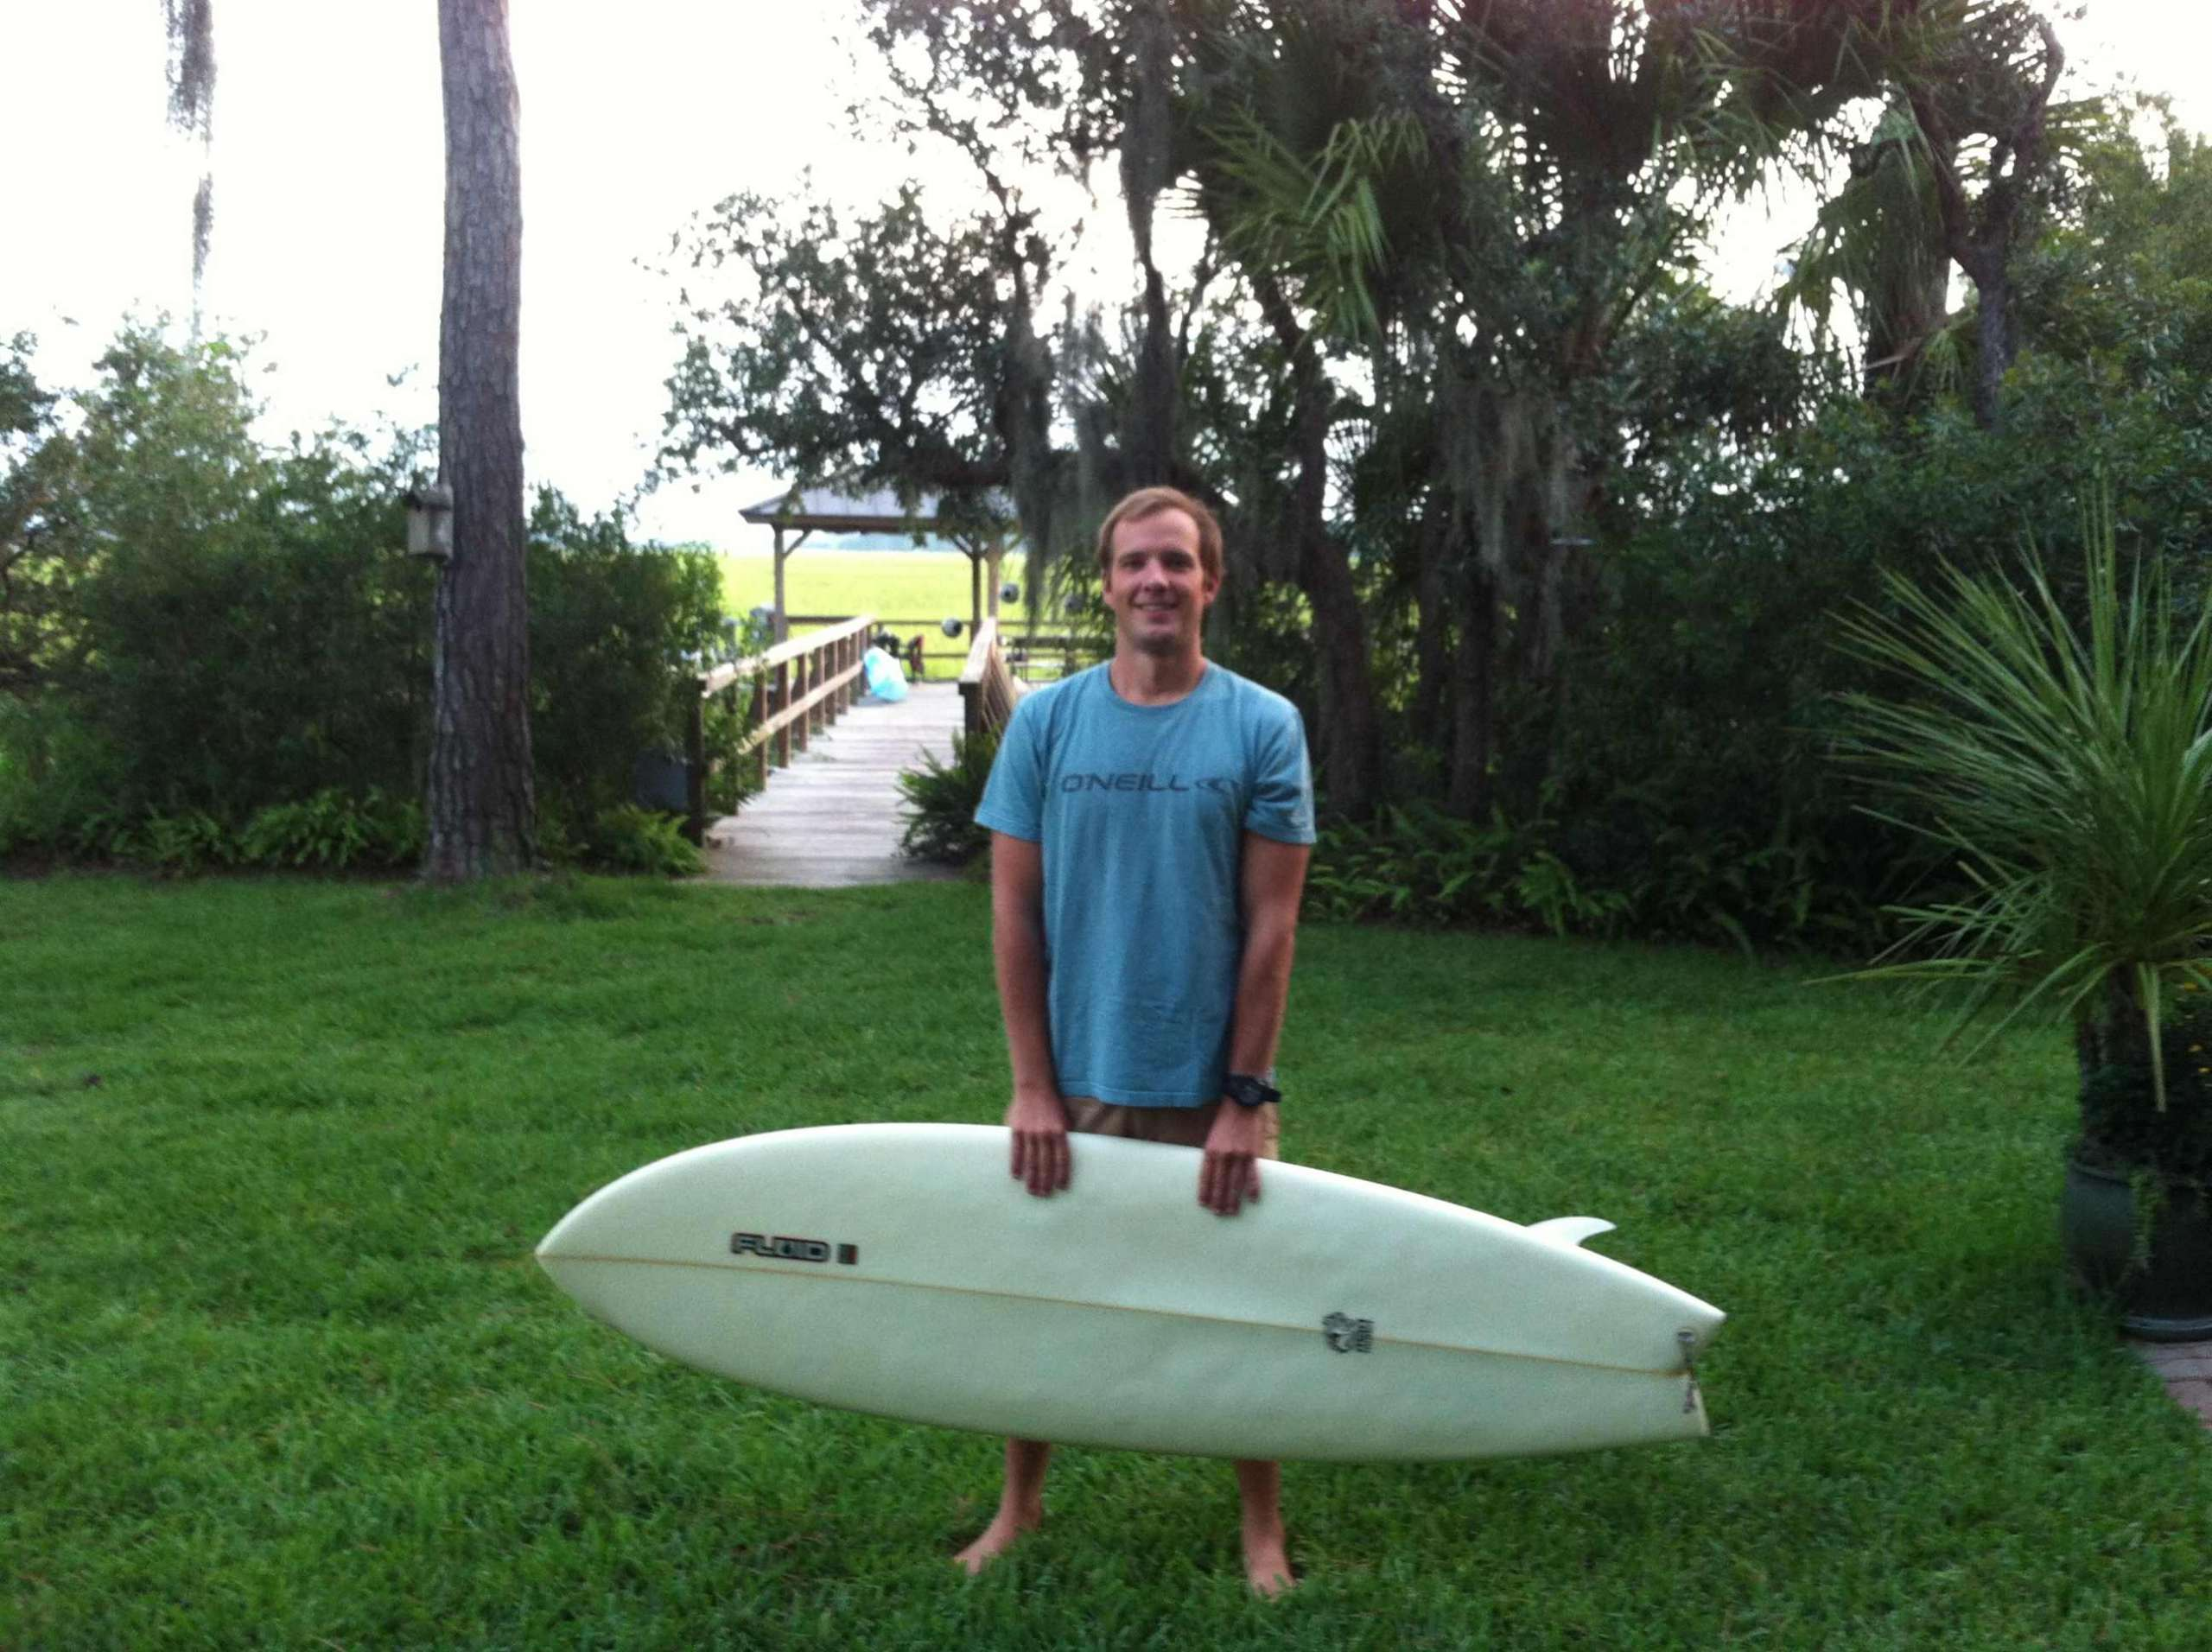 How to Get Your Board Back After it's Stolen